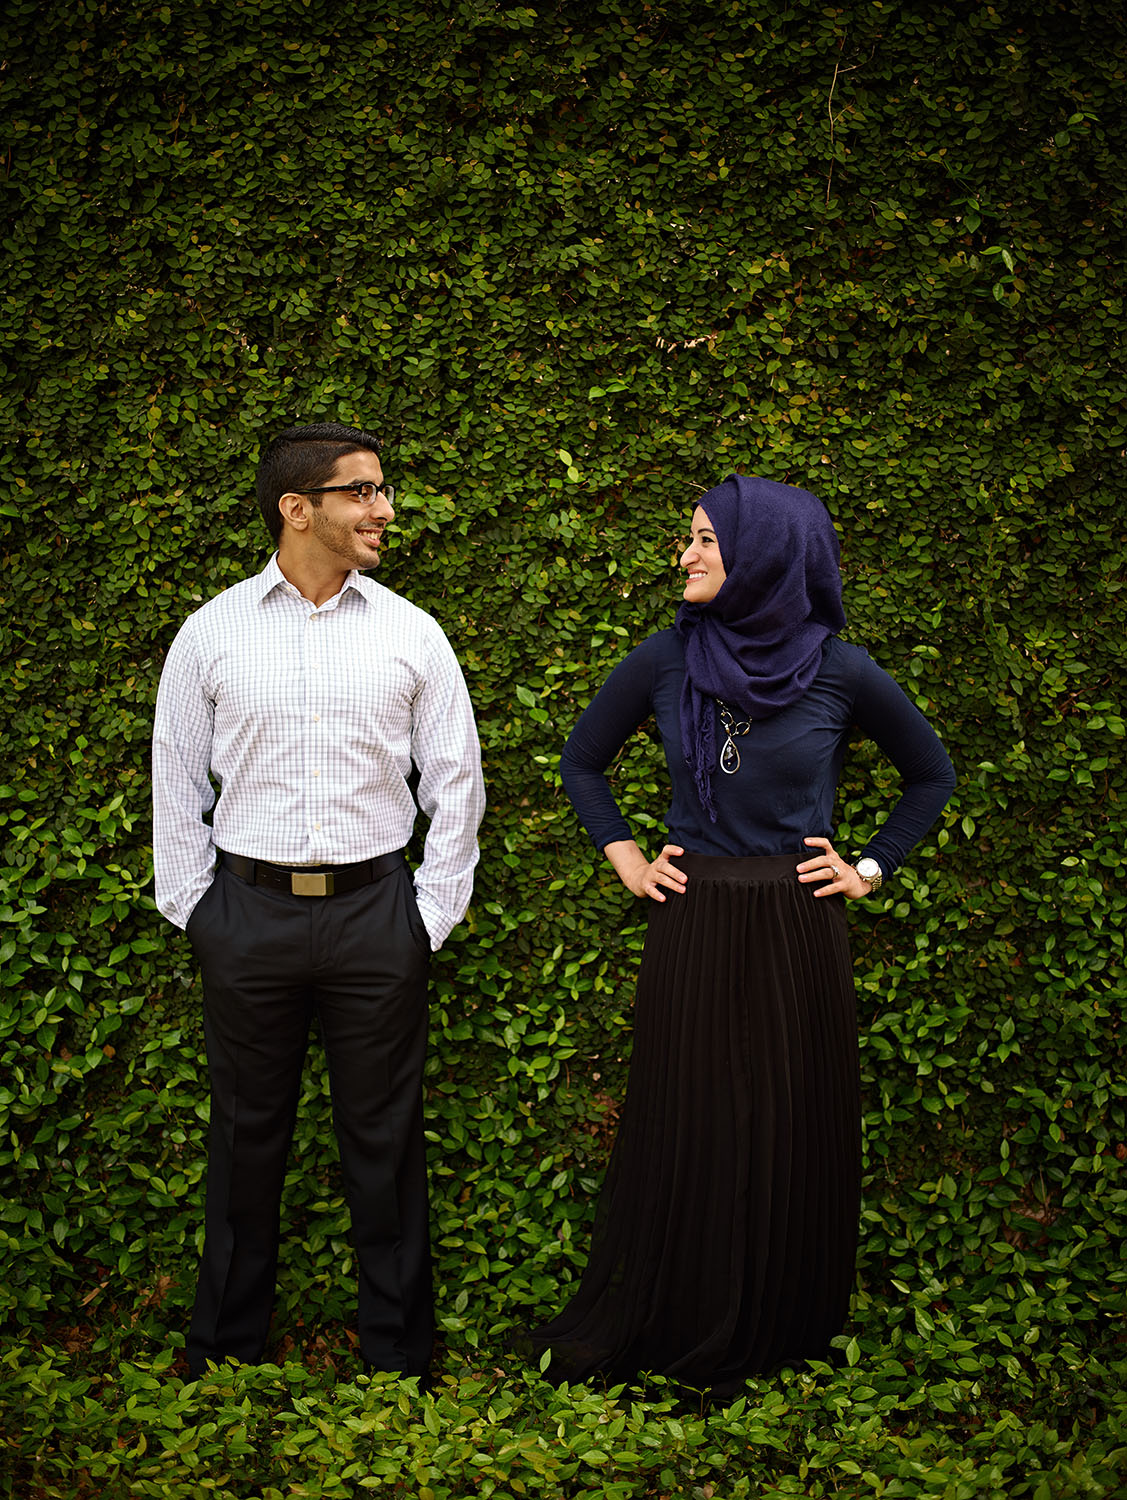 Husna and Rizwan at Rice University in Houston, TX